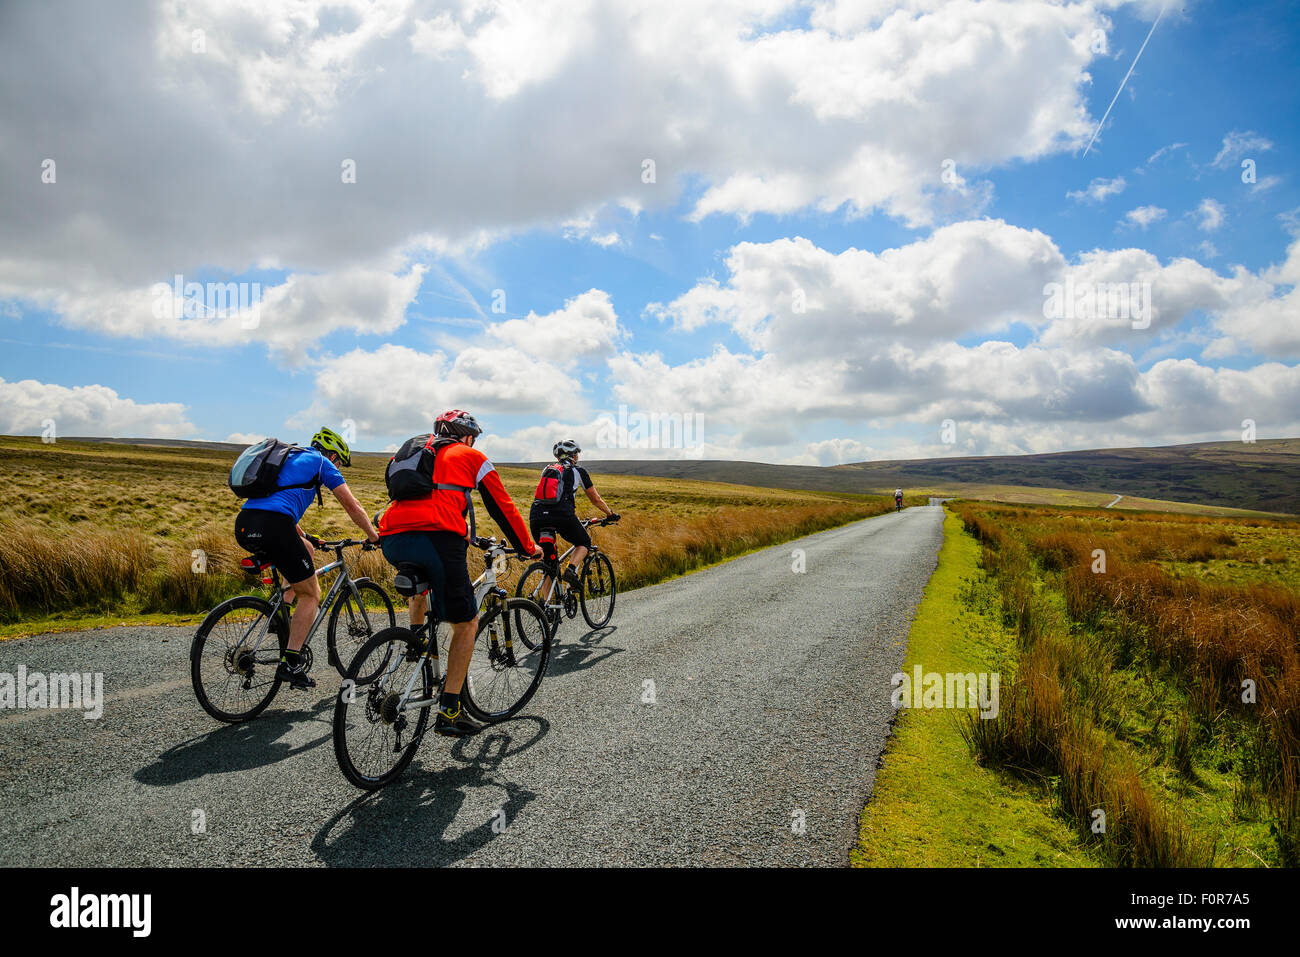 Cyclists on road across the Bowland Fells Lancashire which has its high point at Cross o'Greet - Stock Image